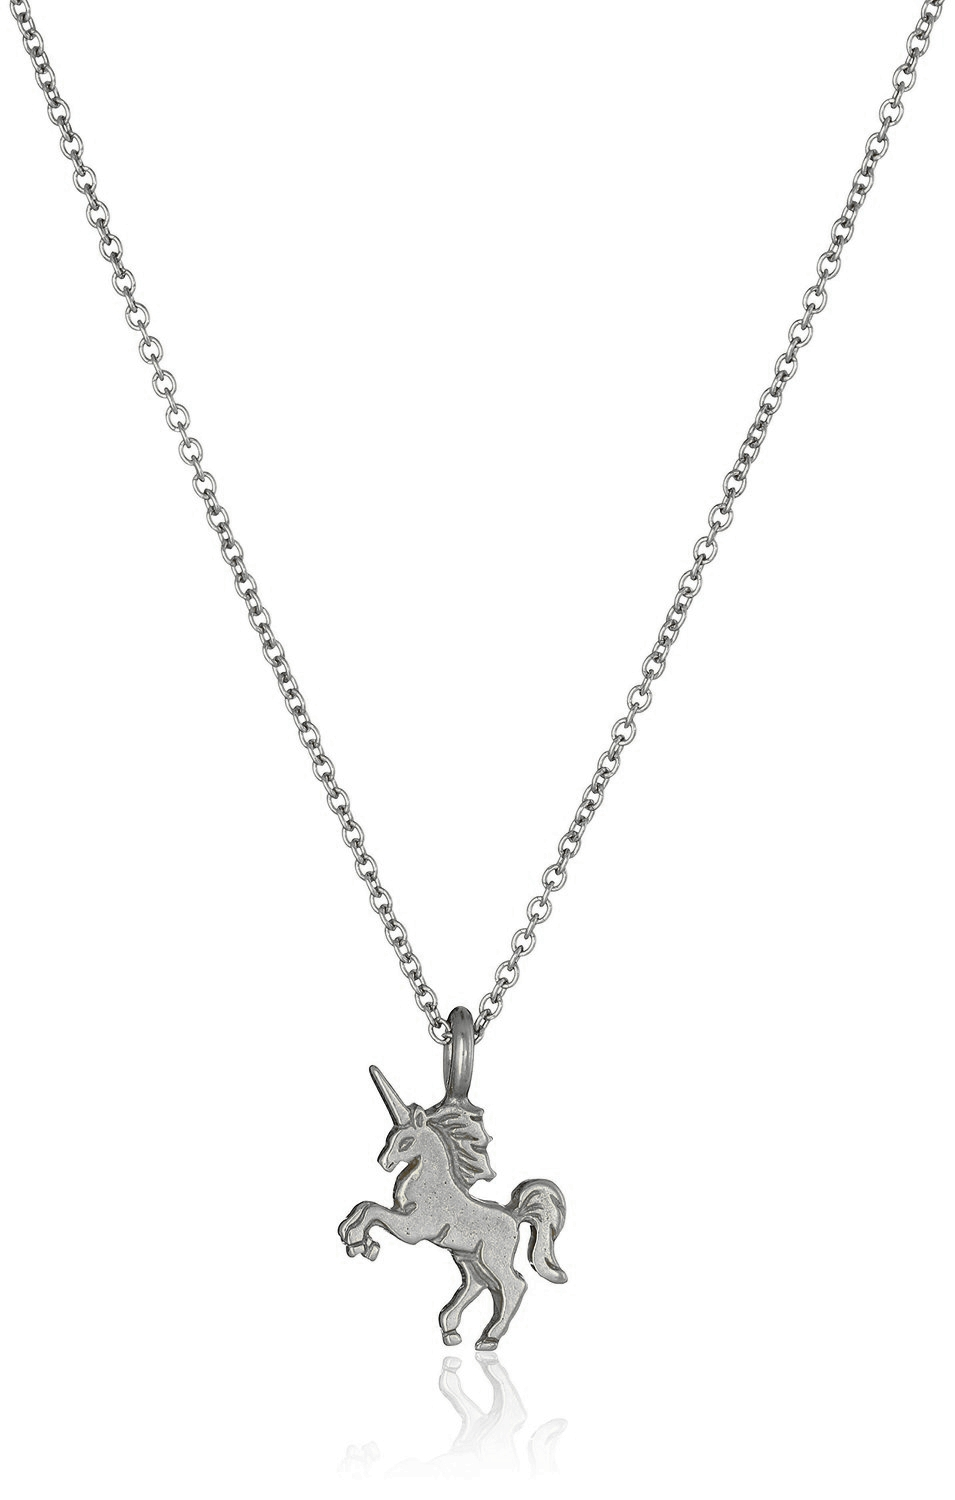 16 inch magical unicorn necklace in silver